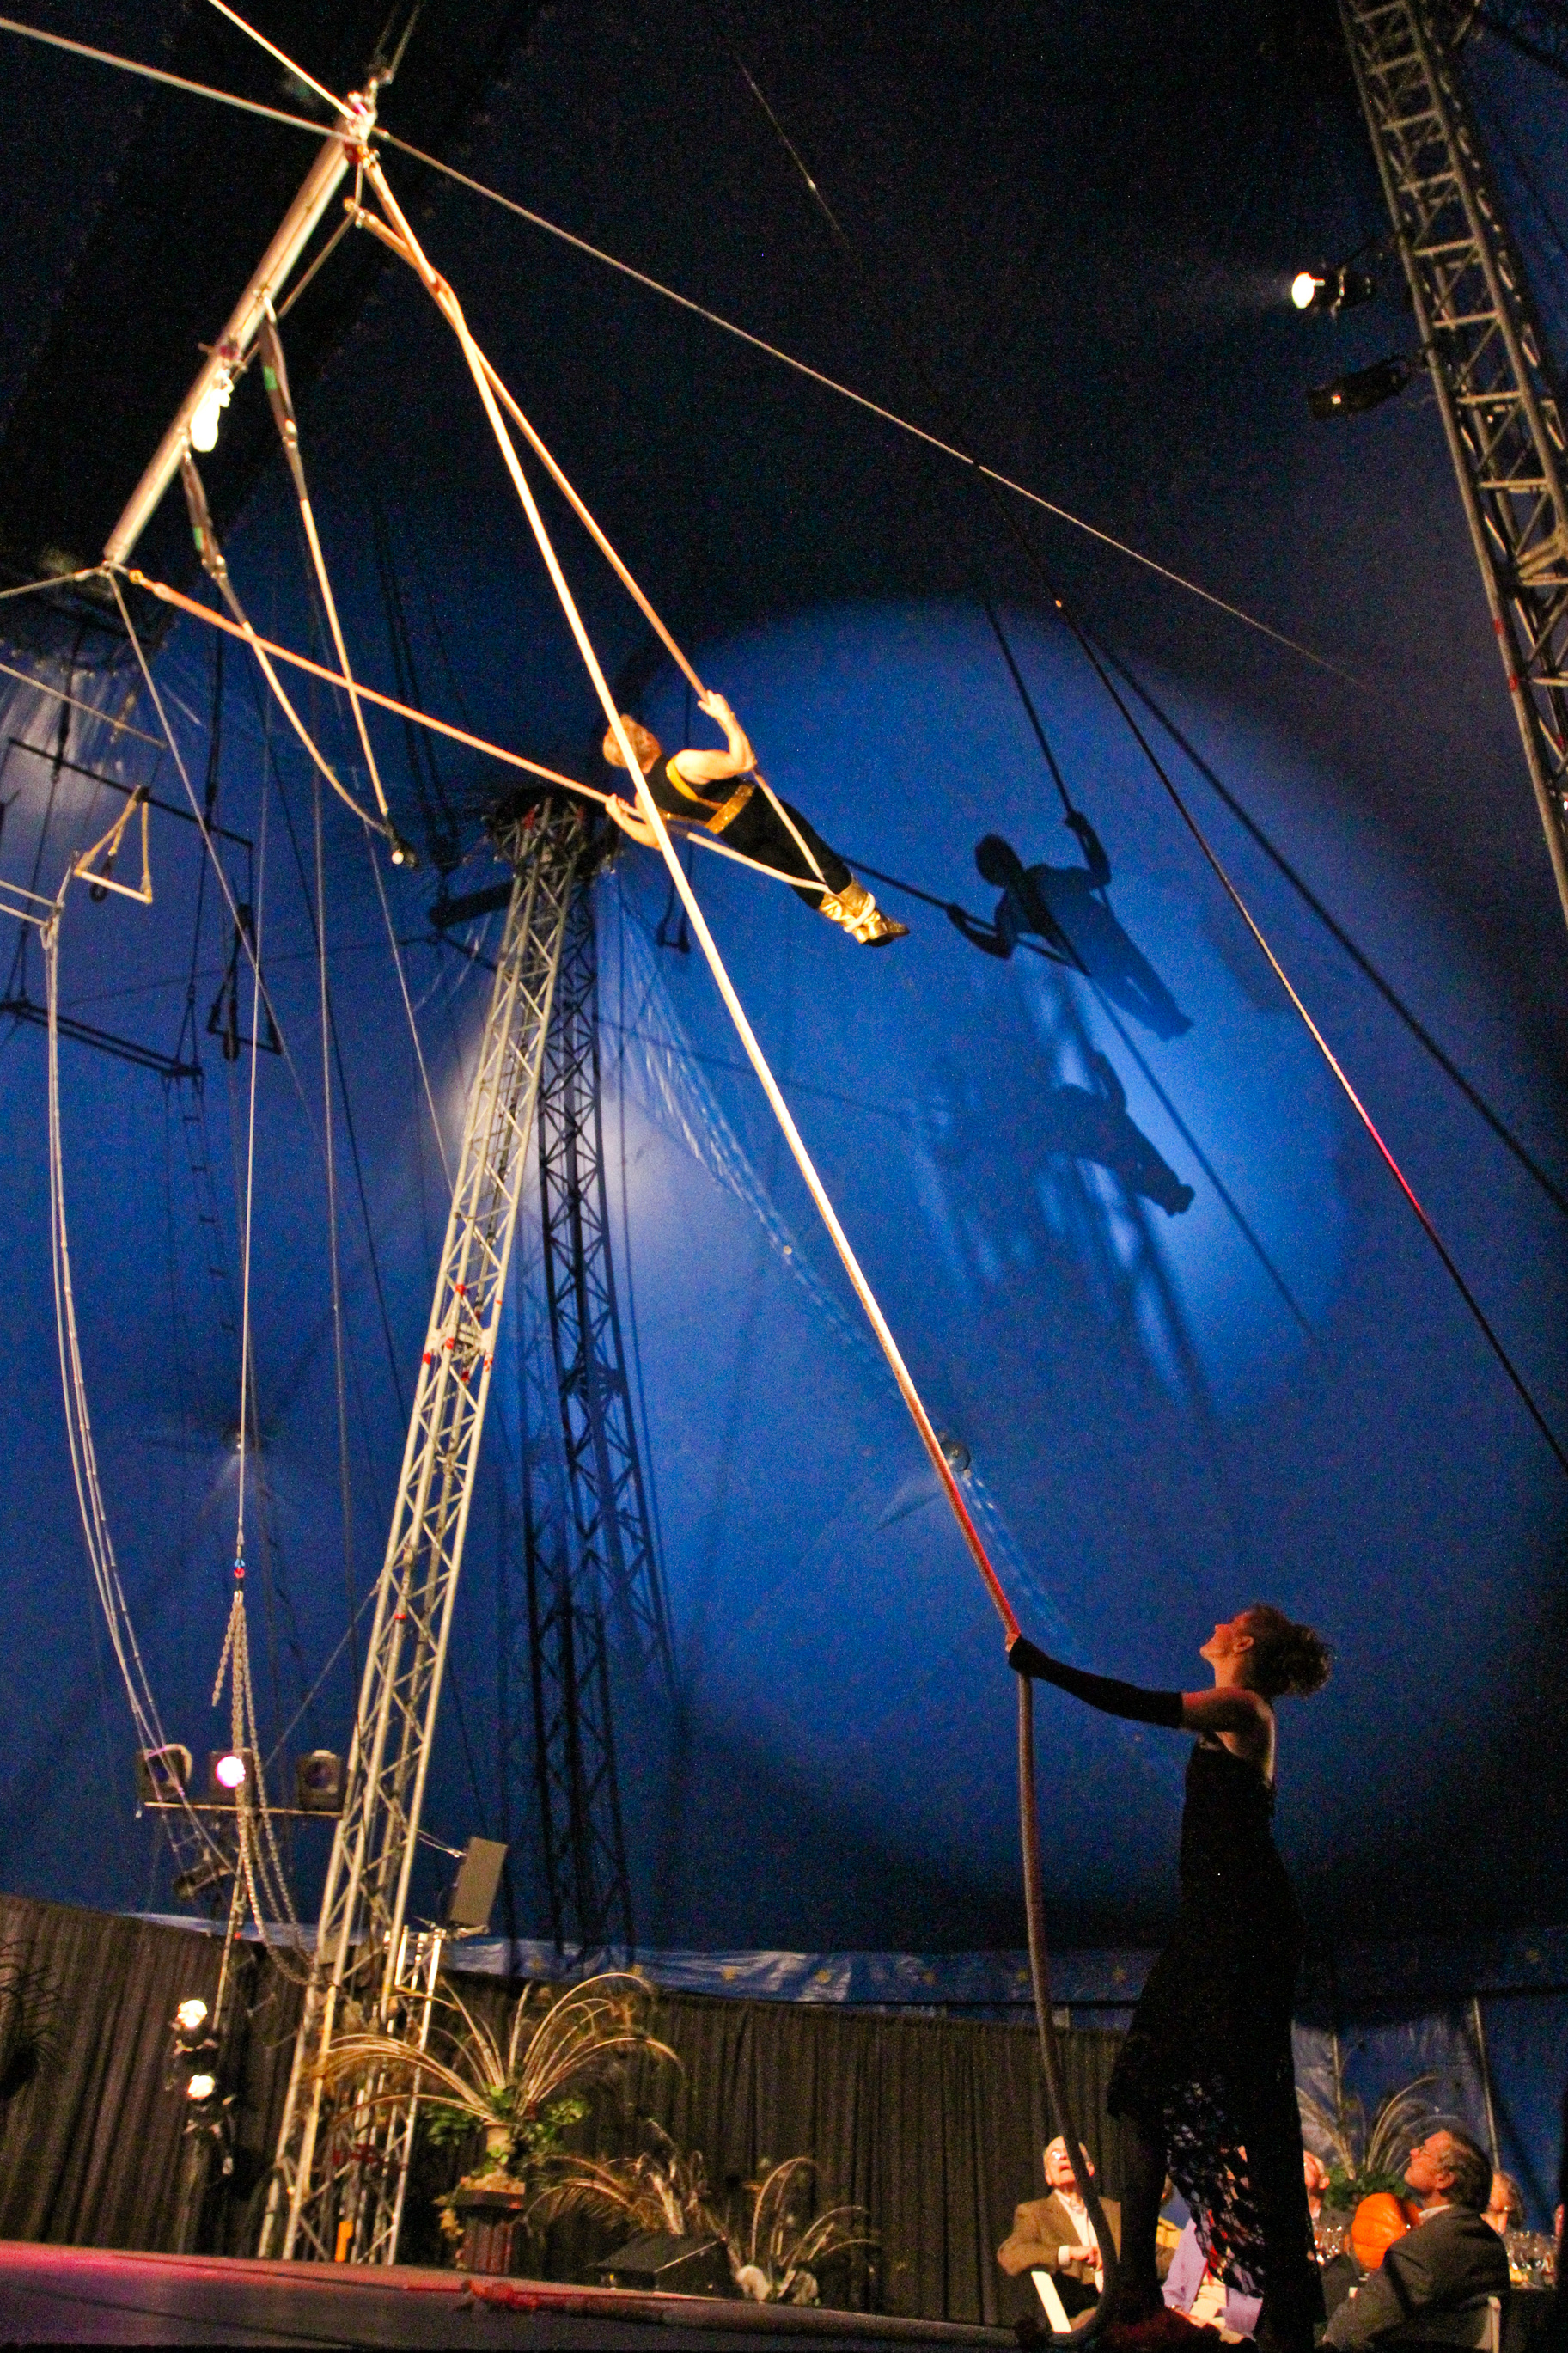 Sacha performs on Cloud Swing with his wife Melinda holding the rope!